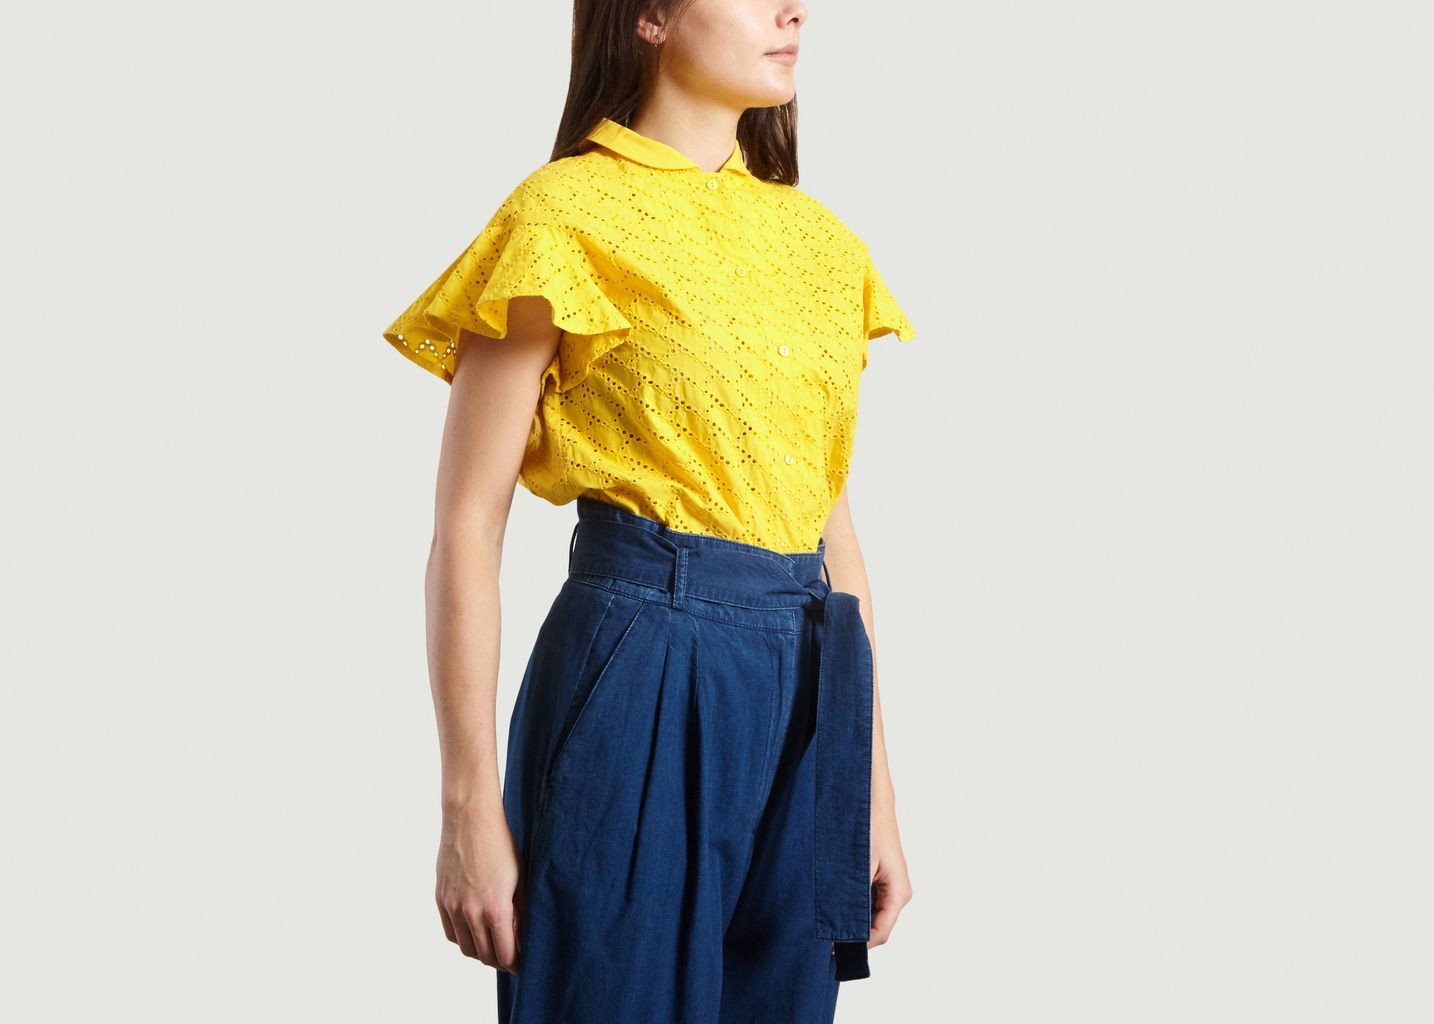 Chemise Manches Courtes A Broderie Anglaise - Tara Jarmon